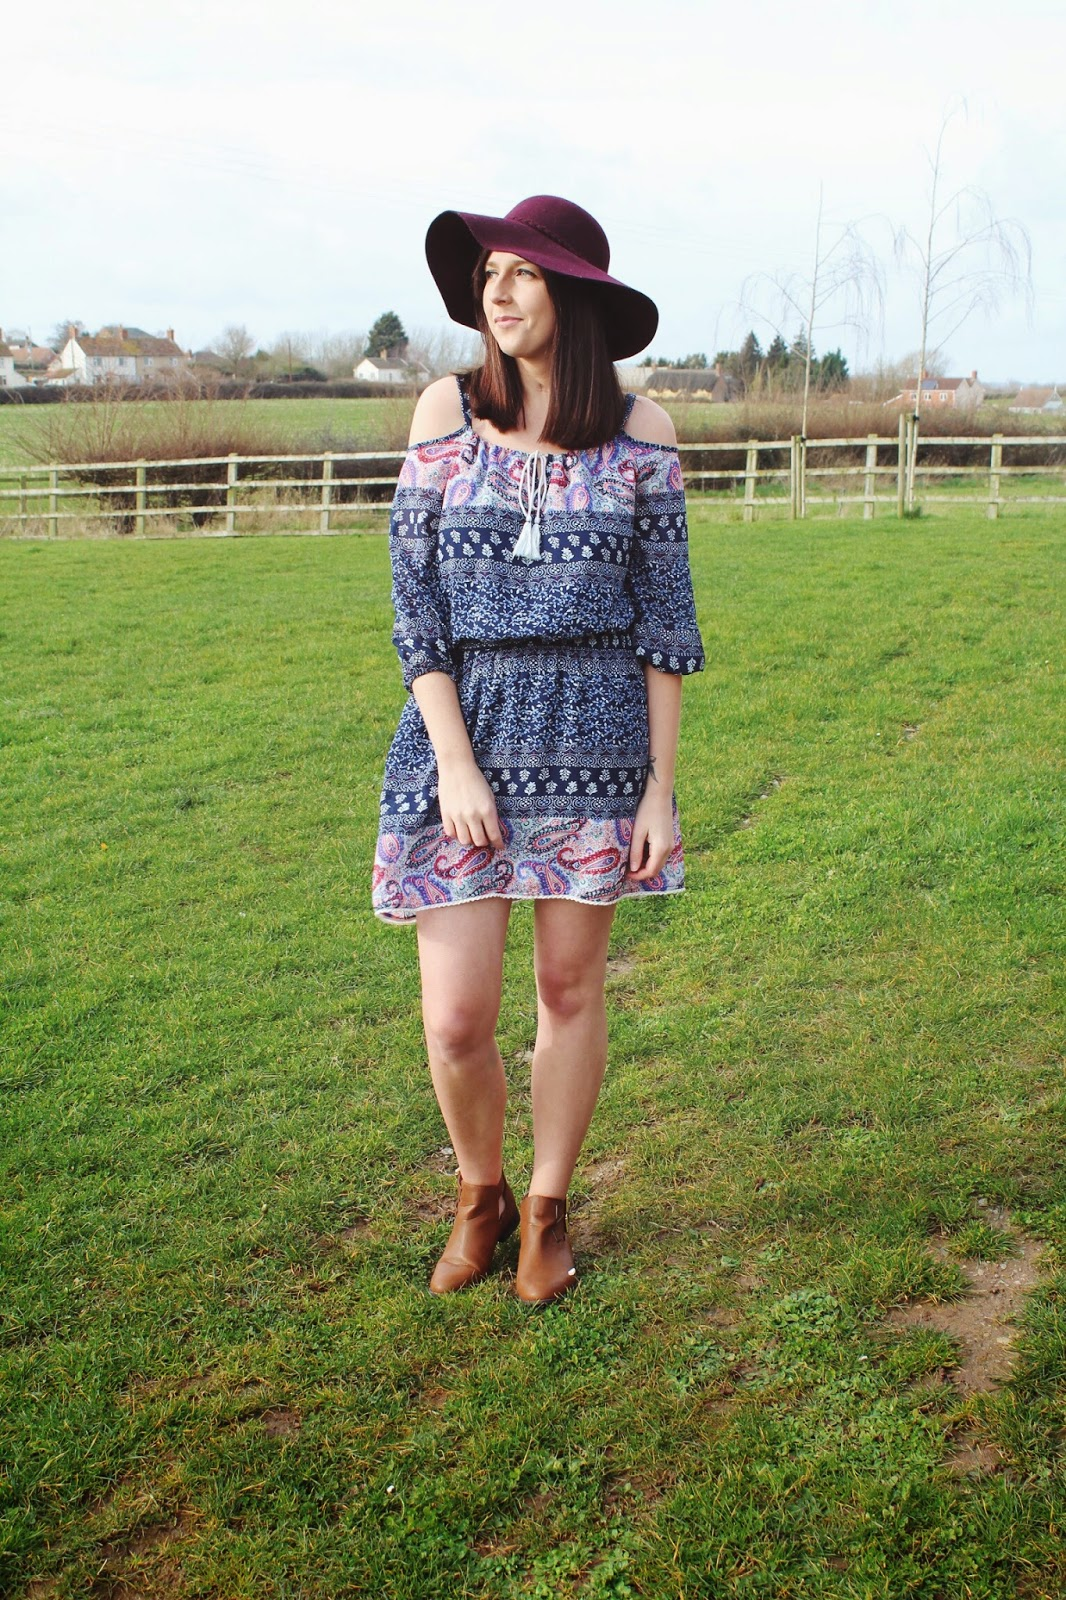 halcyonvelvet, wiw, whatimwearing, asseenonme, lots, lookoftheday, ootd, outfitoftheday, primark, paisleyprint, coldshoulderdress, floppyhat, brownankleboots, fbloggers, fblogger, fashionbloggers, fashion, fashionblogger